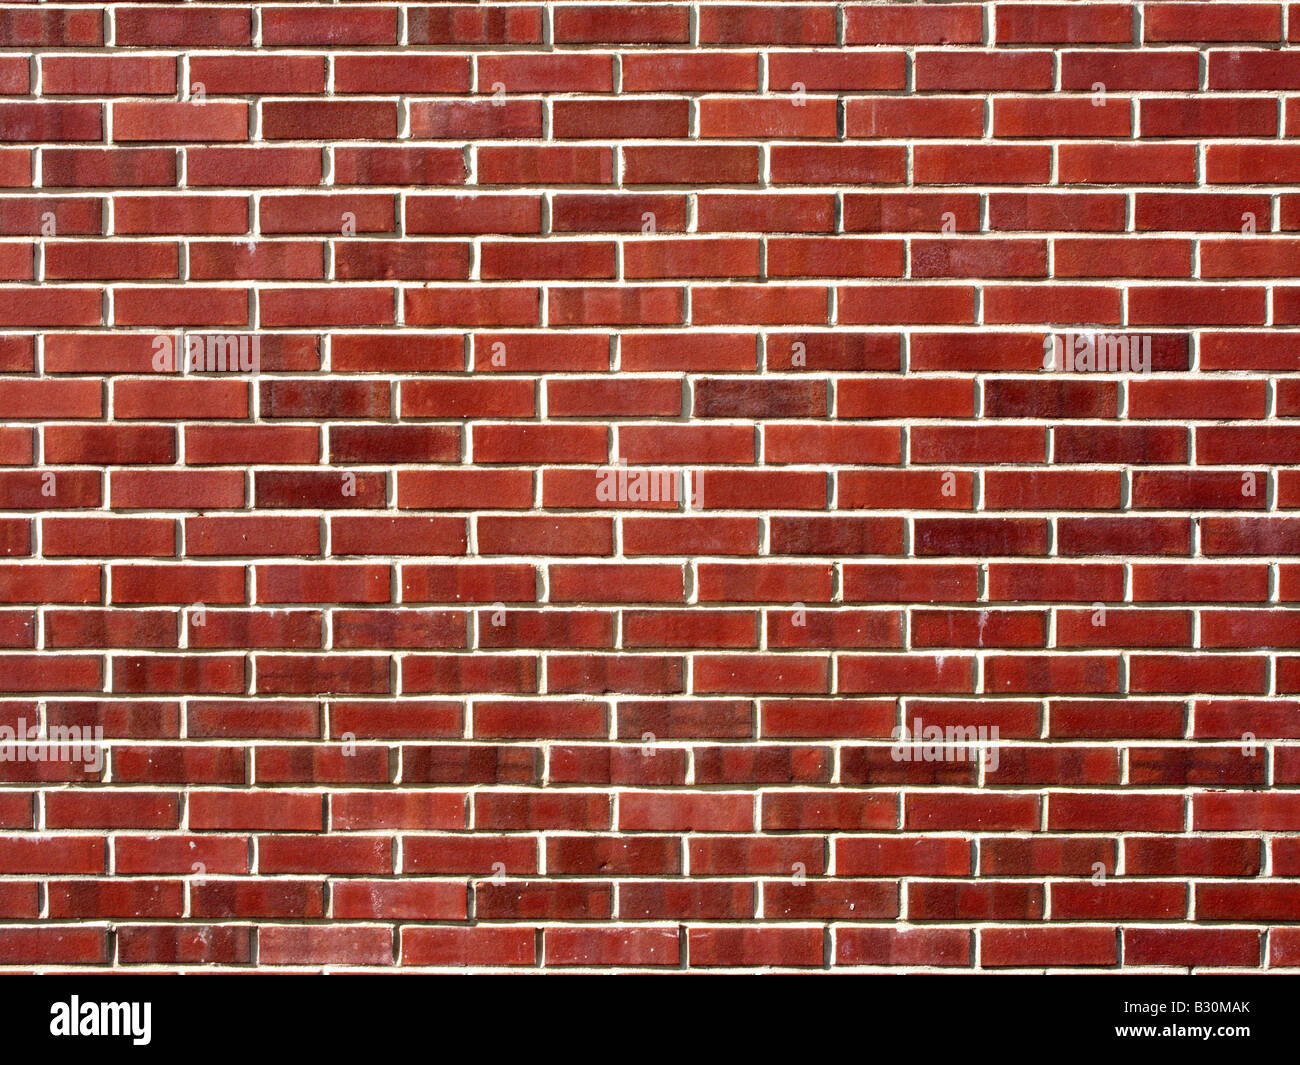 Red Brick wall Background - Stock Image